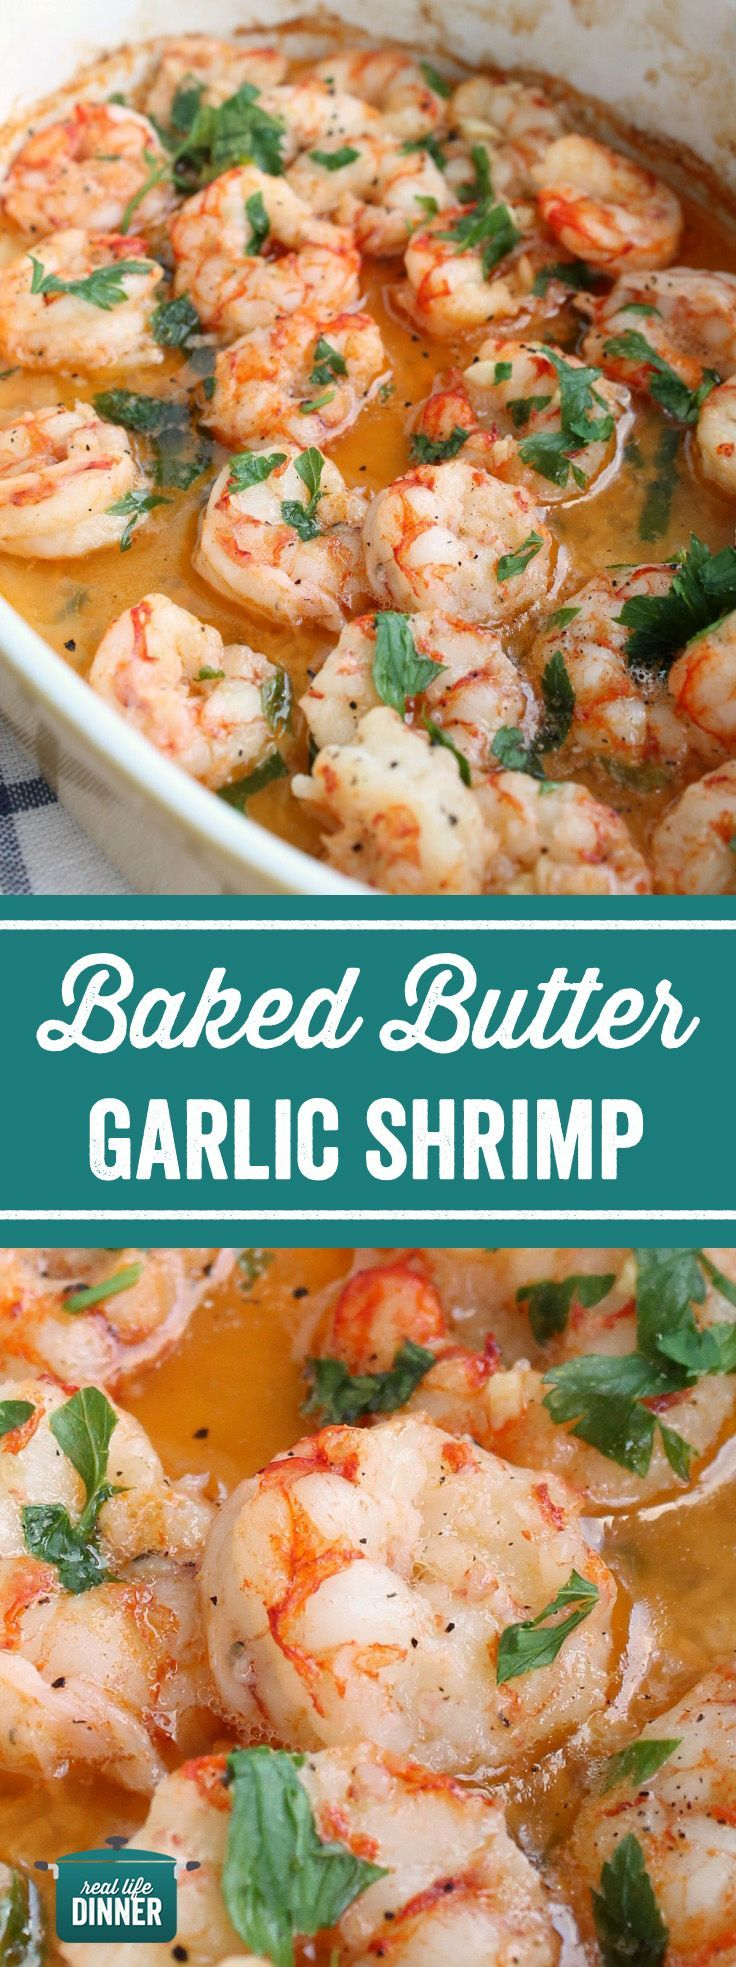 Quick and easy Baked Butter Garlic Shrimp, perfect on there own or delicious tosse